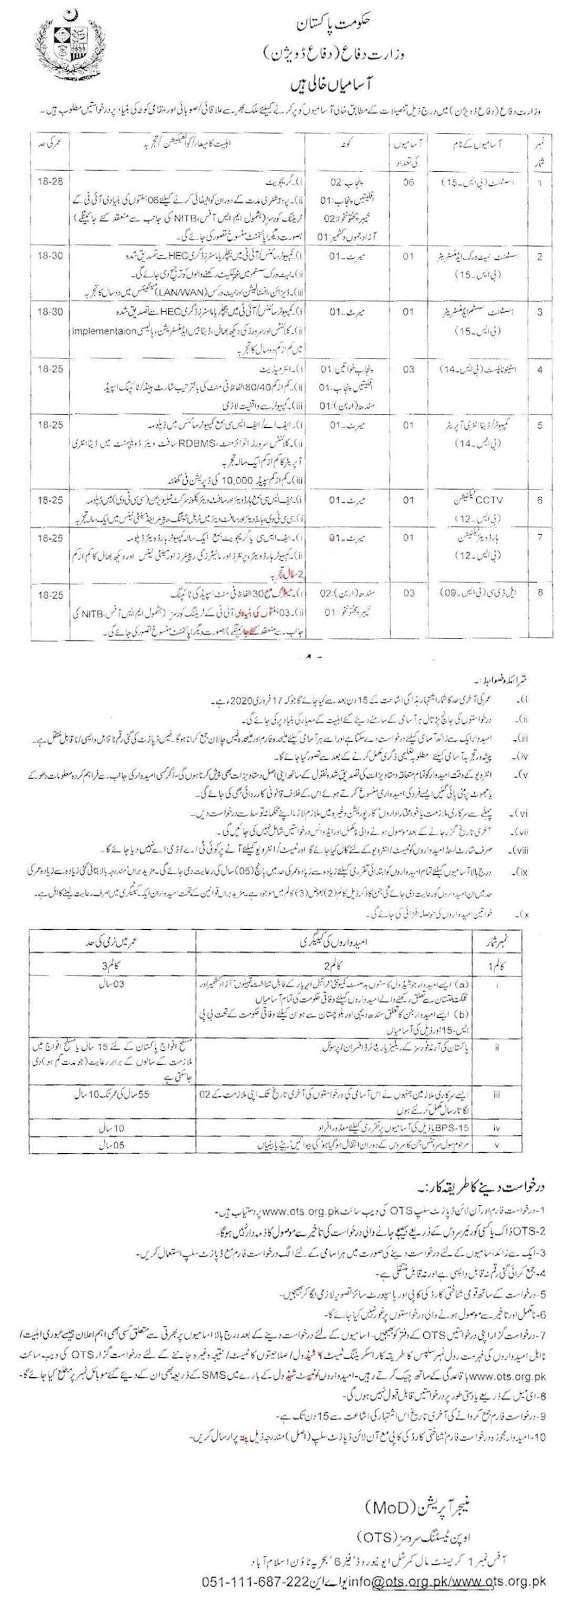 Ministry of Defence MoD Management Jobs 2020 via OTS Testing Service